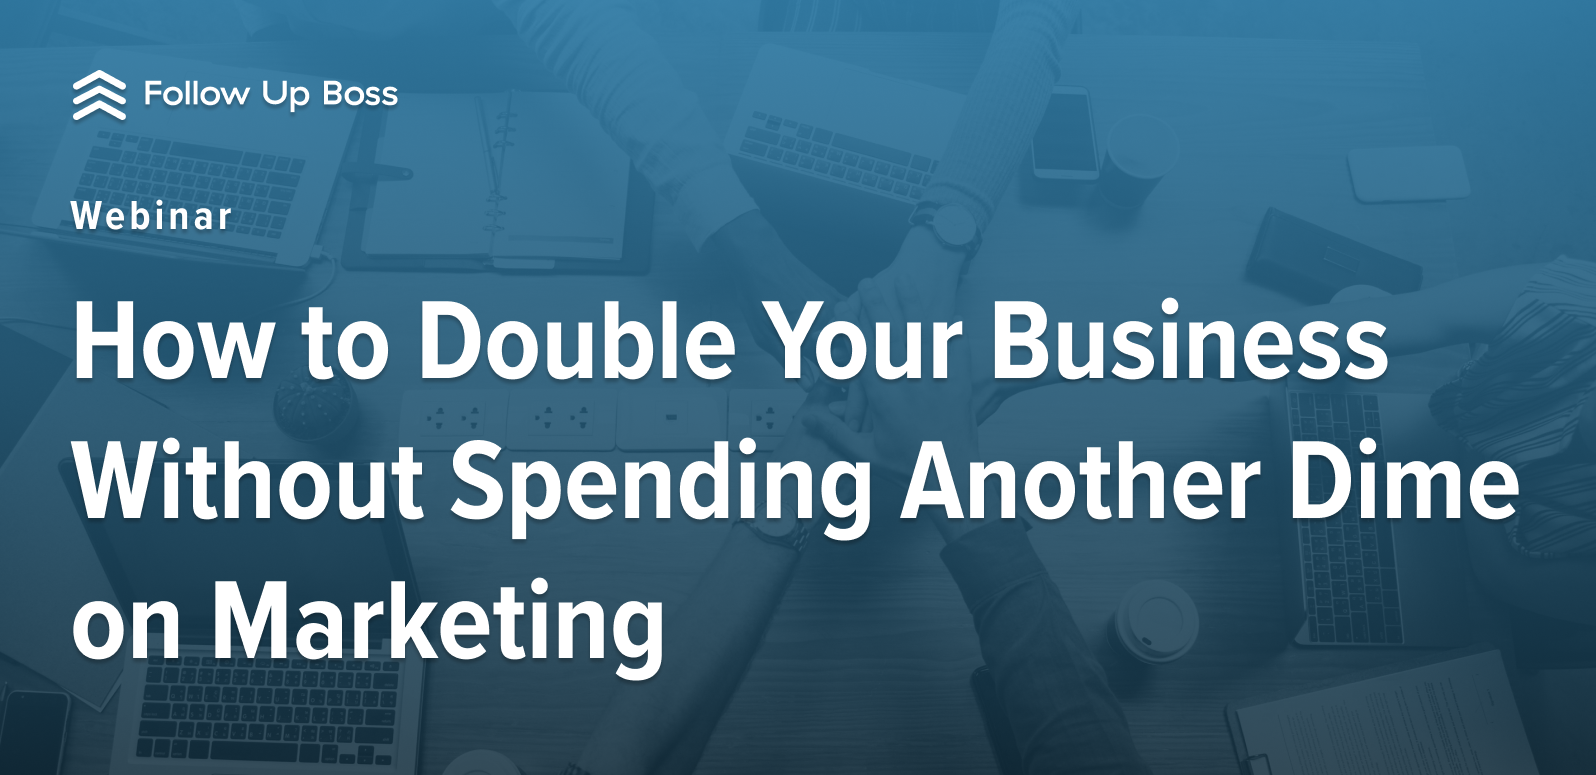 How to Double Your Business Without Spending Another Dime on Marketing